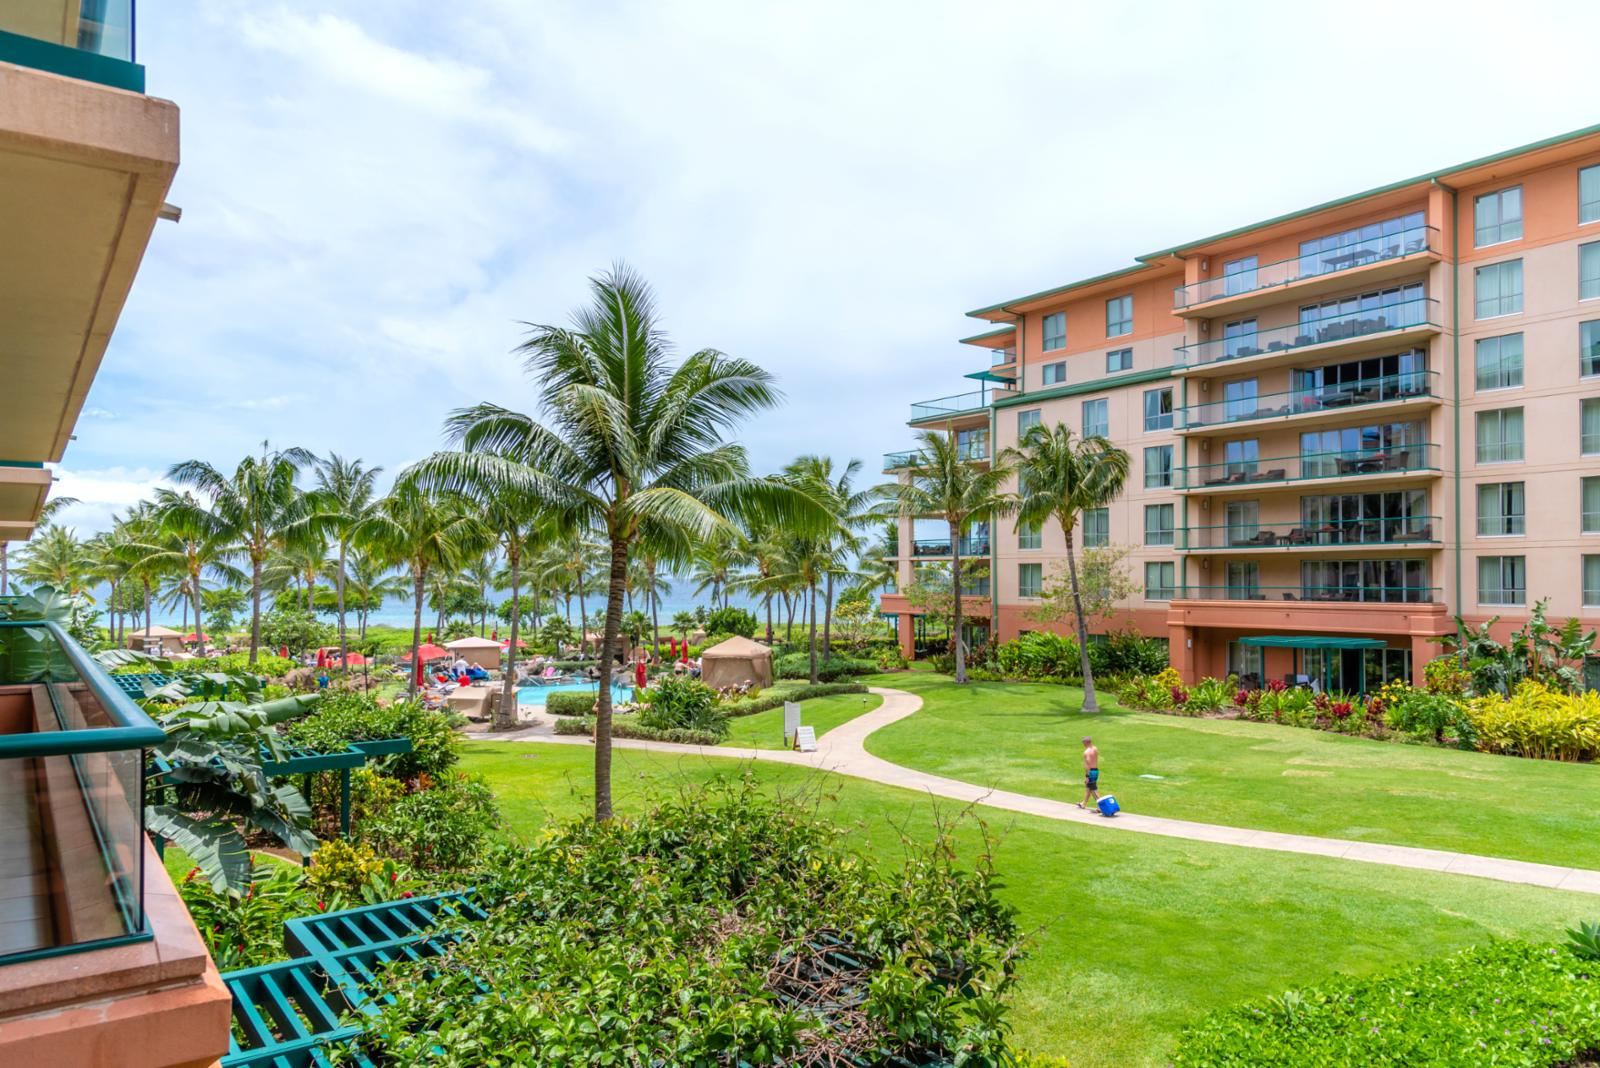 Large grounds perfect for walking to the beach and family activities!